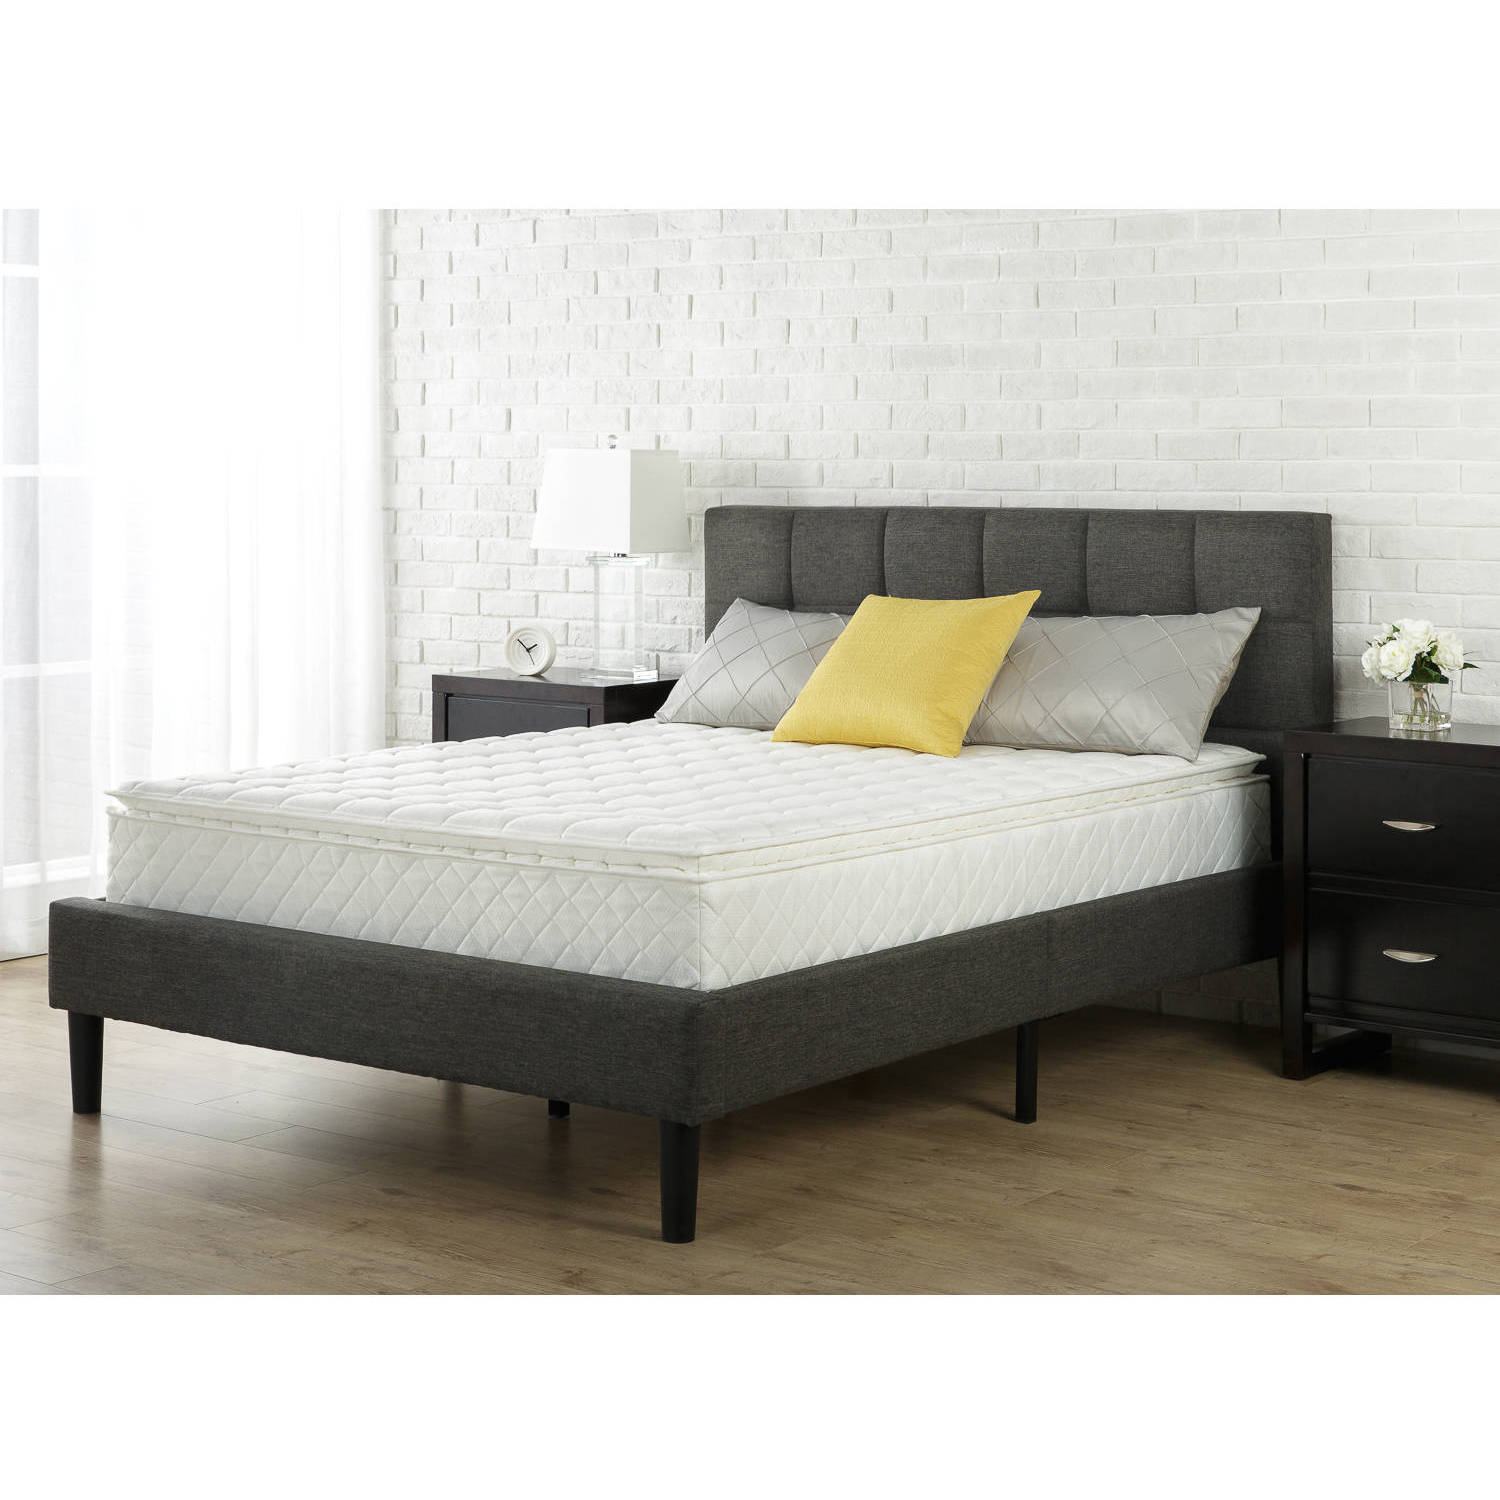 Slumber 1 - 10'' Dream Pillow Top Mattress